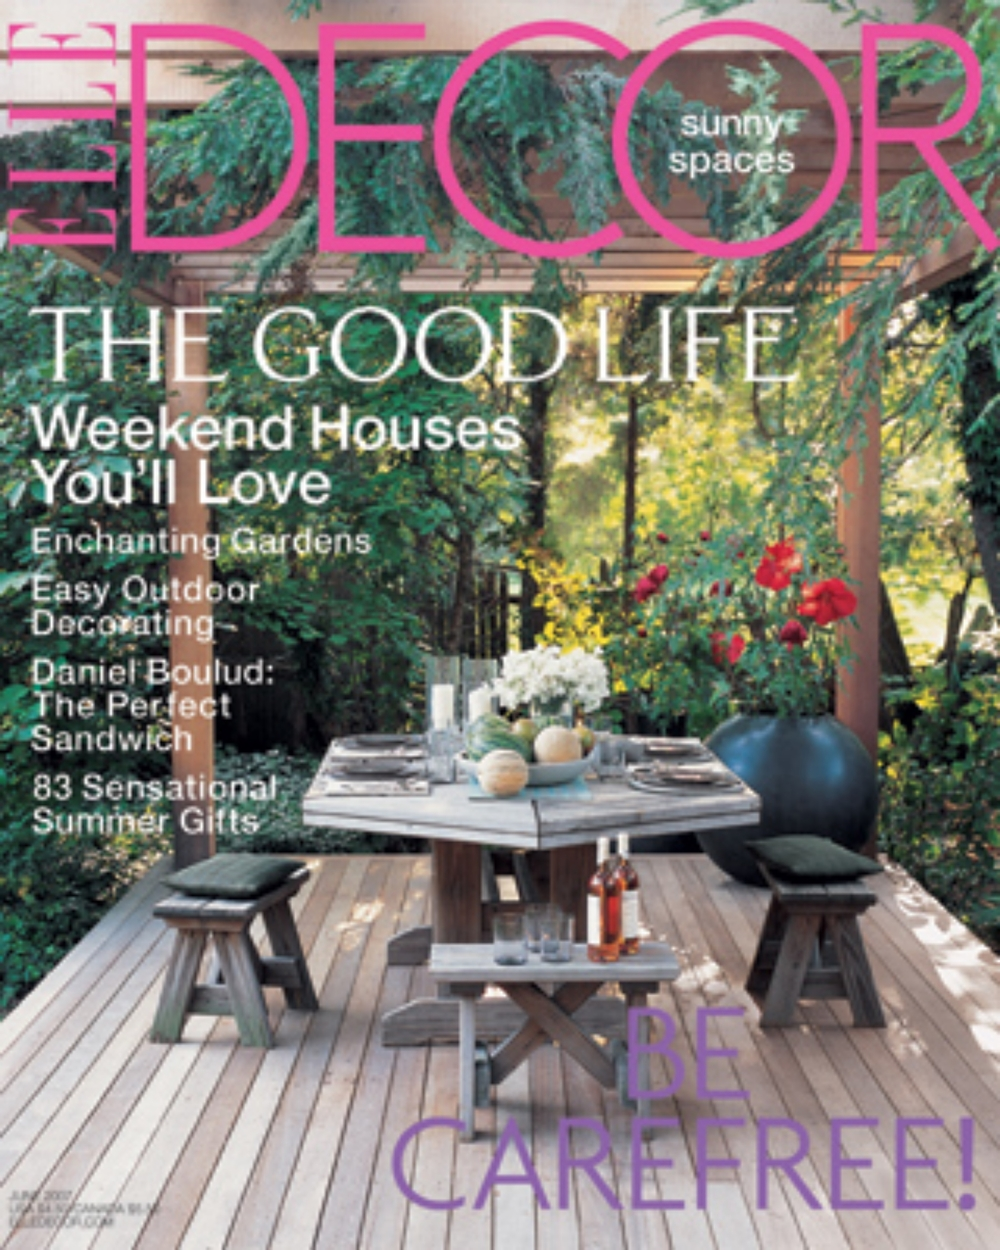 ElleDecor-cover.jpg